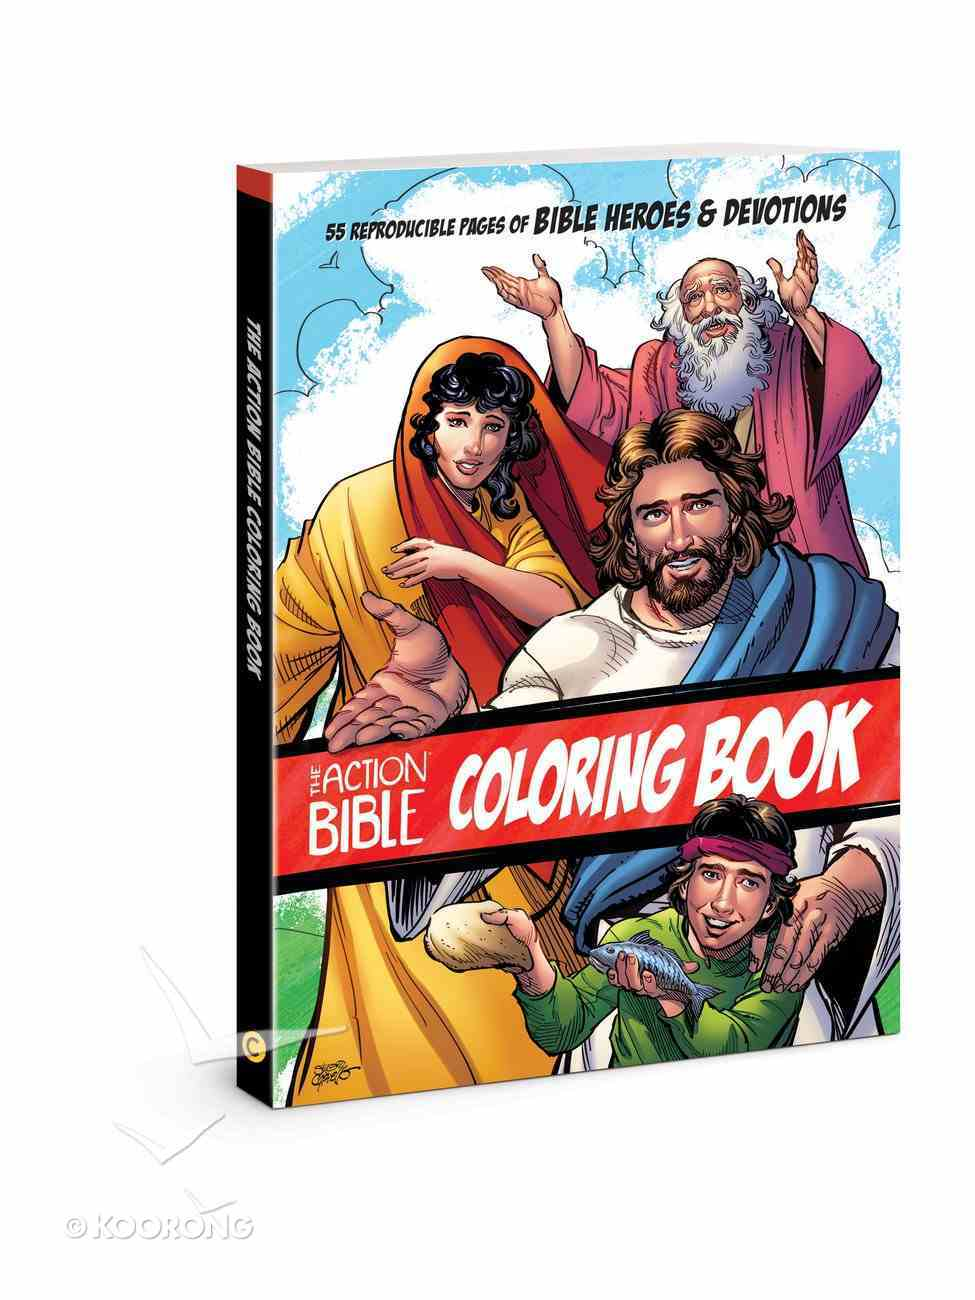 The Action Bible Coloring Book: 55 Reproducible Pages of Bible Heroes and Devotions Paperback